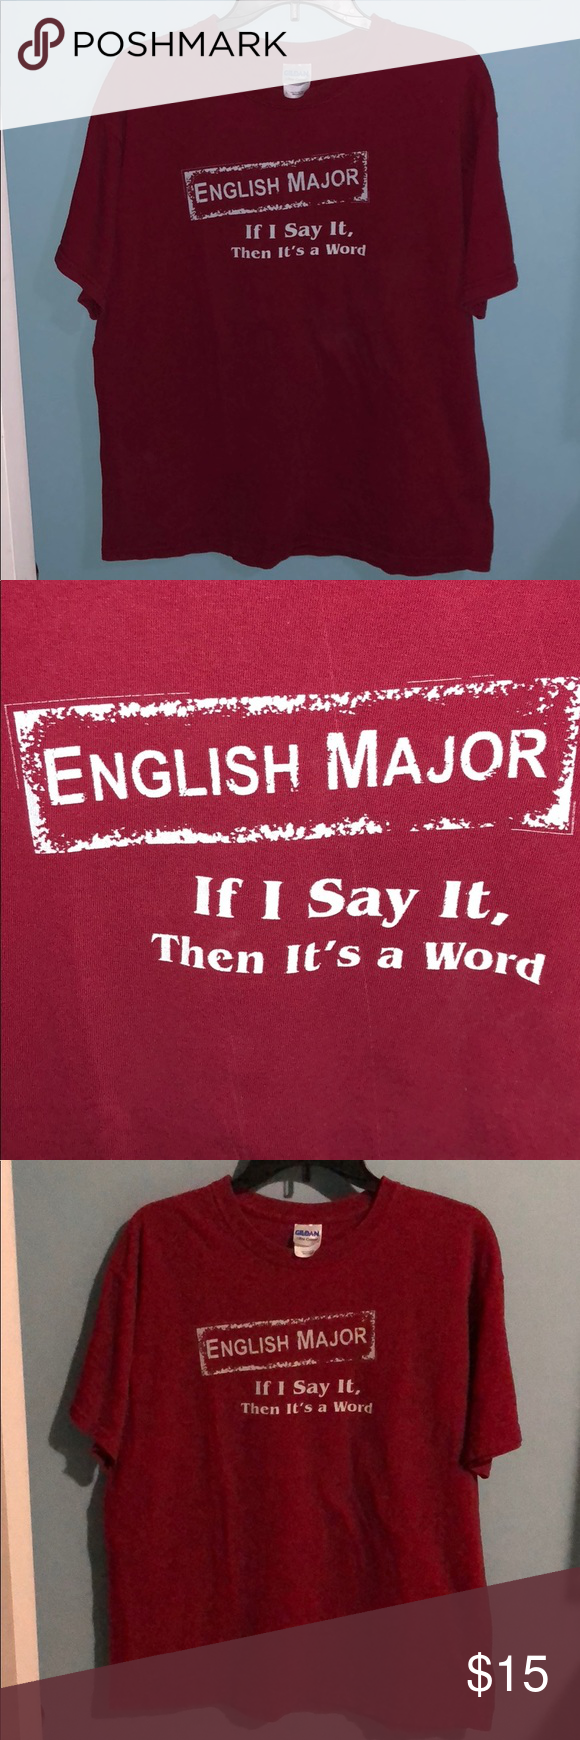 Red English Major Funny Quote T Shirt English Major If I Say It It S A Word Gildan Tops Funny Tshirt Quotes T Shirts With Sayings Clothes Design